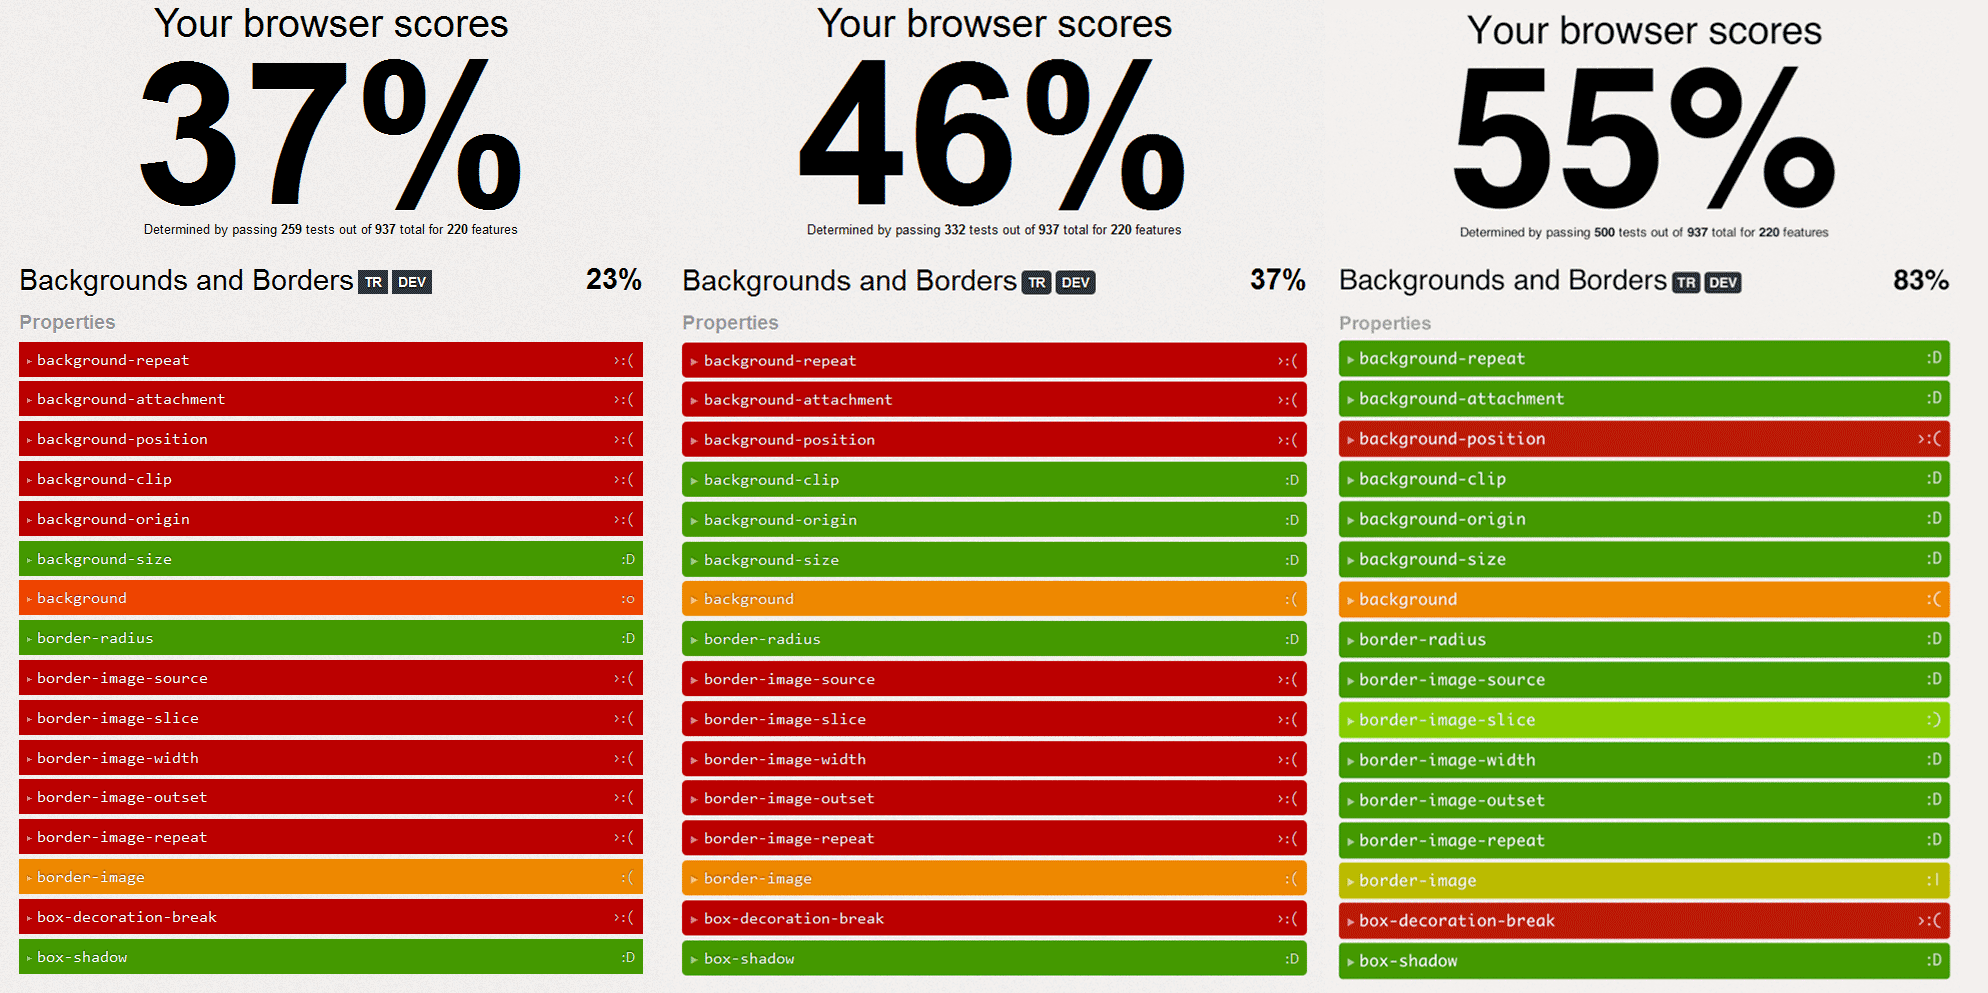 Comparing CSS3 support across Firefox versions